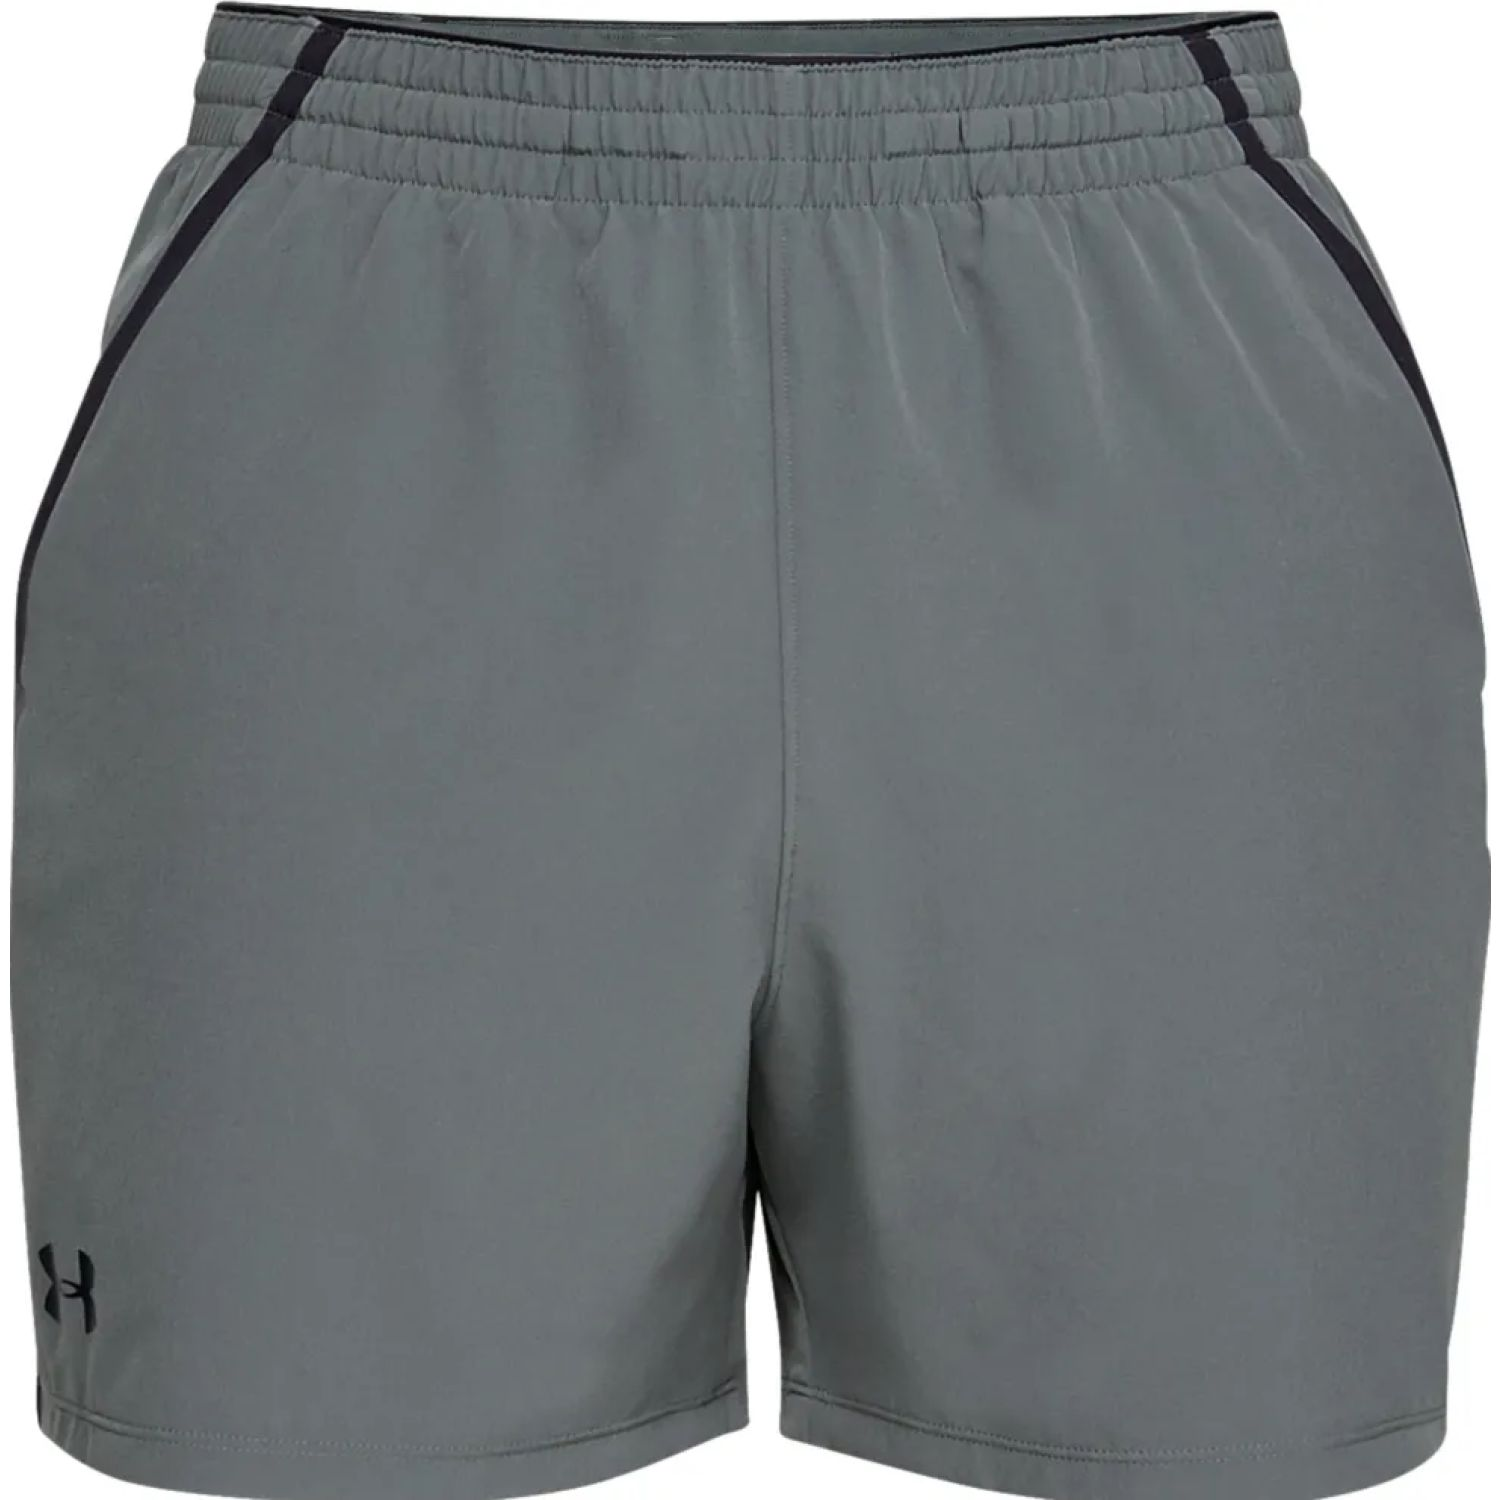 Under Armour Qualifier Wg Perf Short 5in Plomo Shorts deportivos